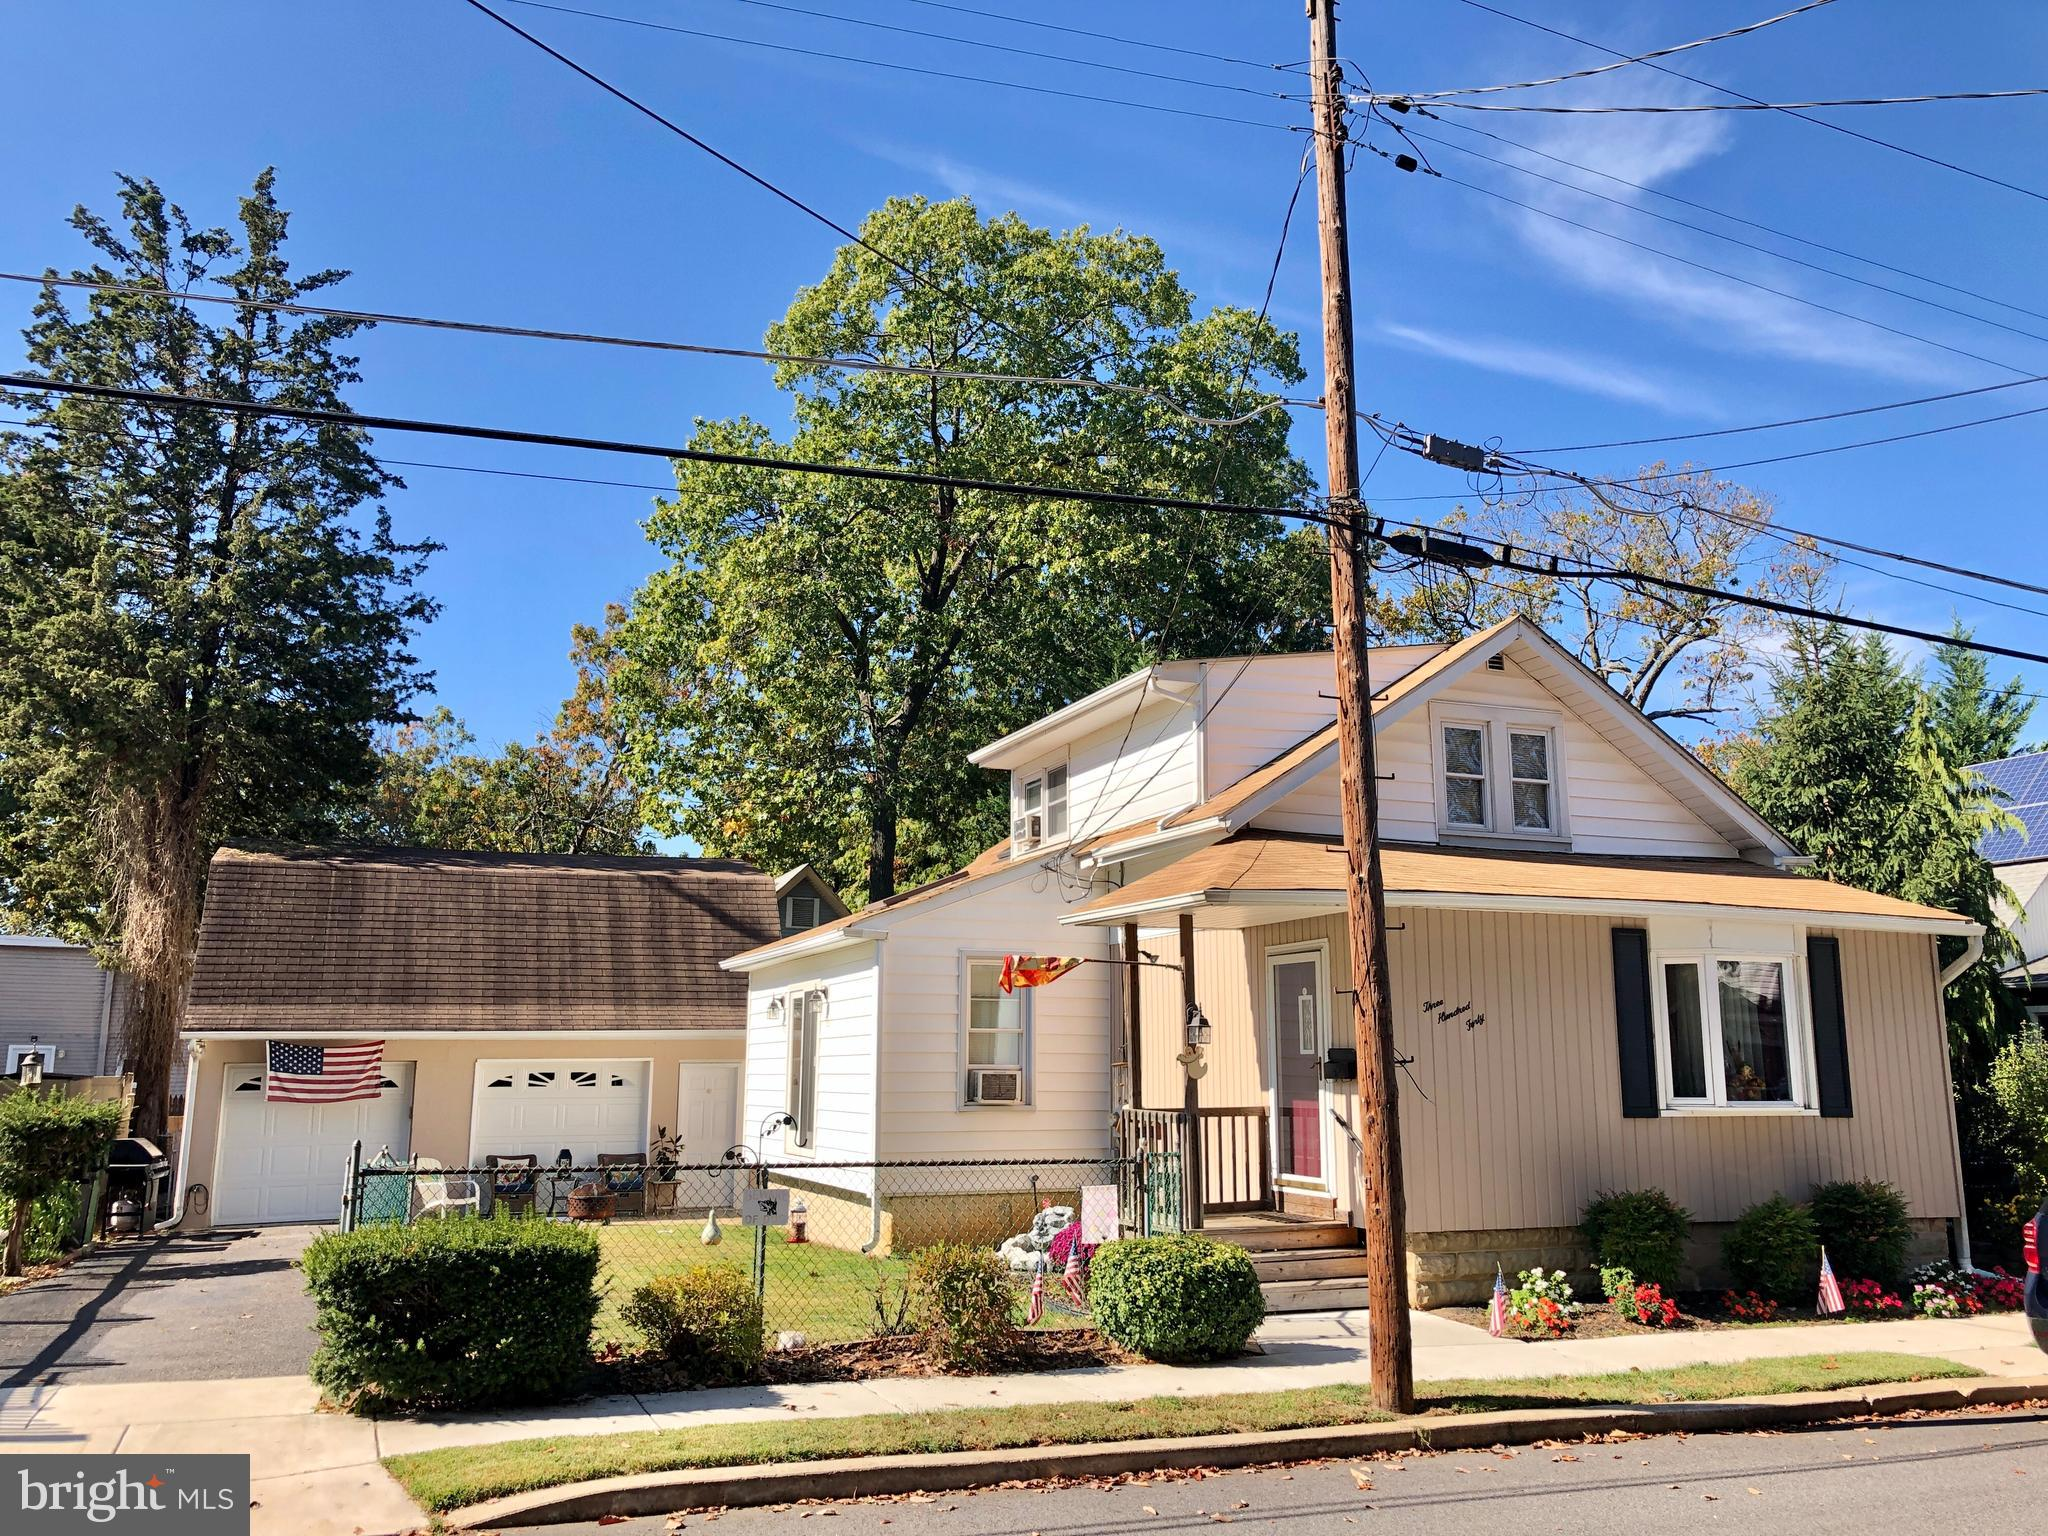 340 WESLEY AVENUE, PITMAN, NJ 08071